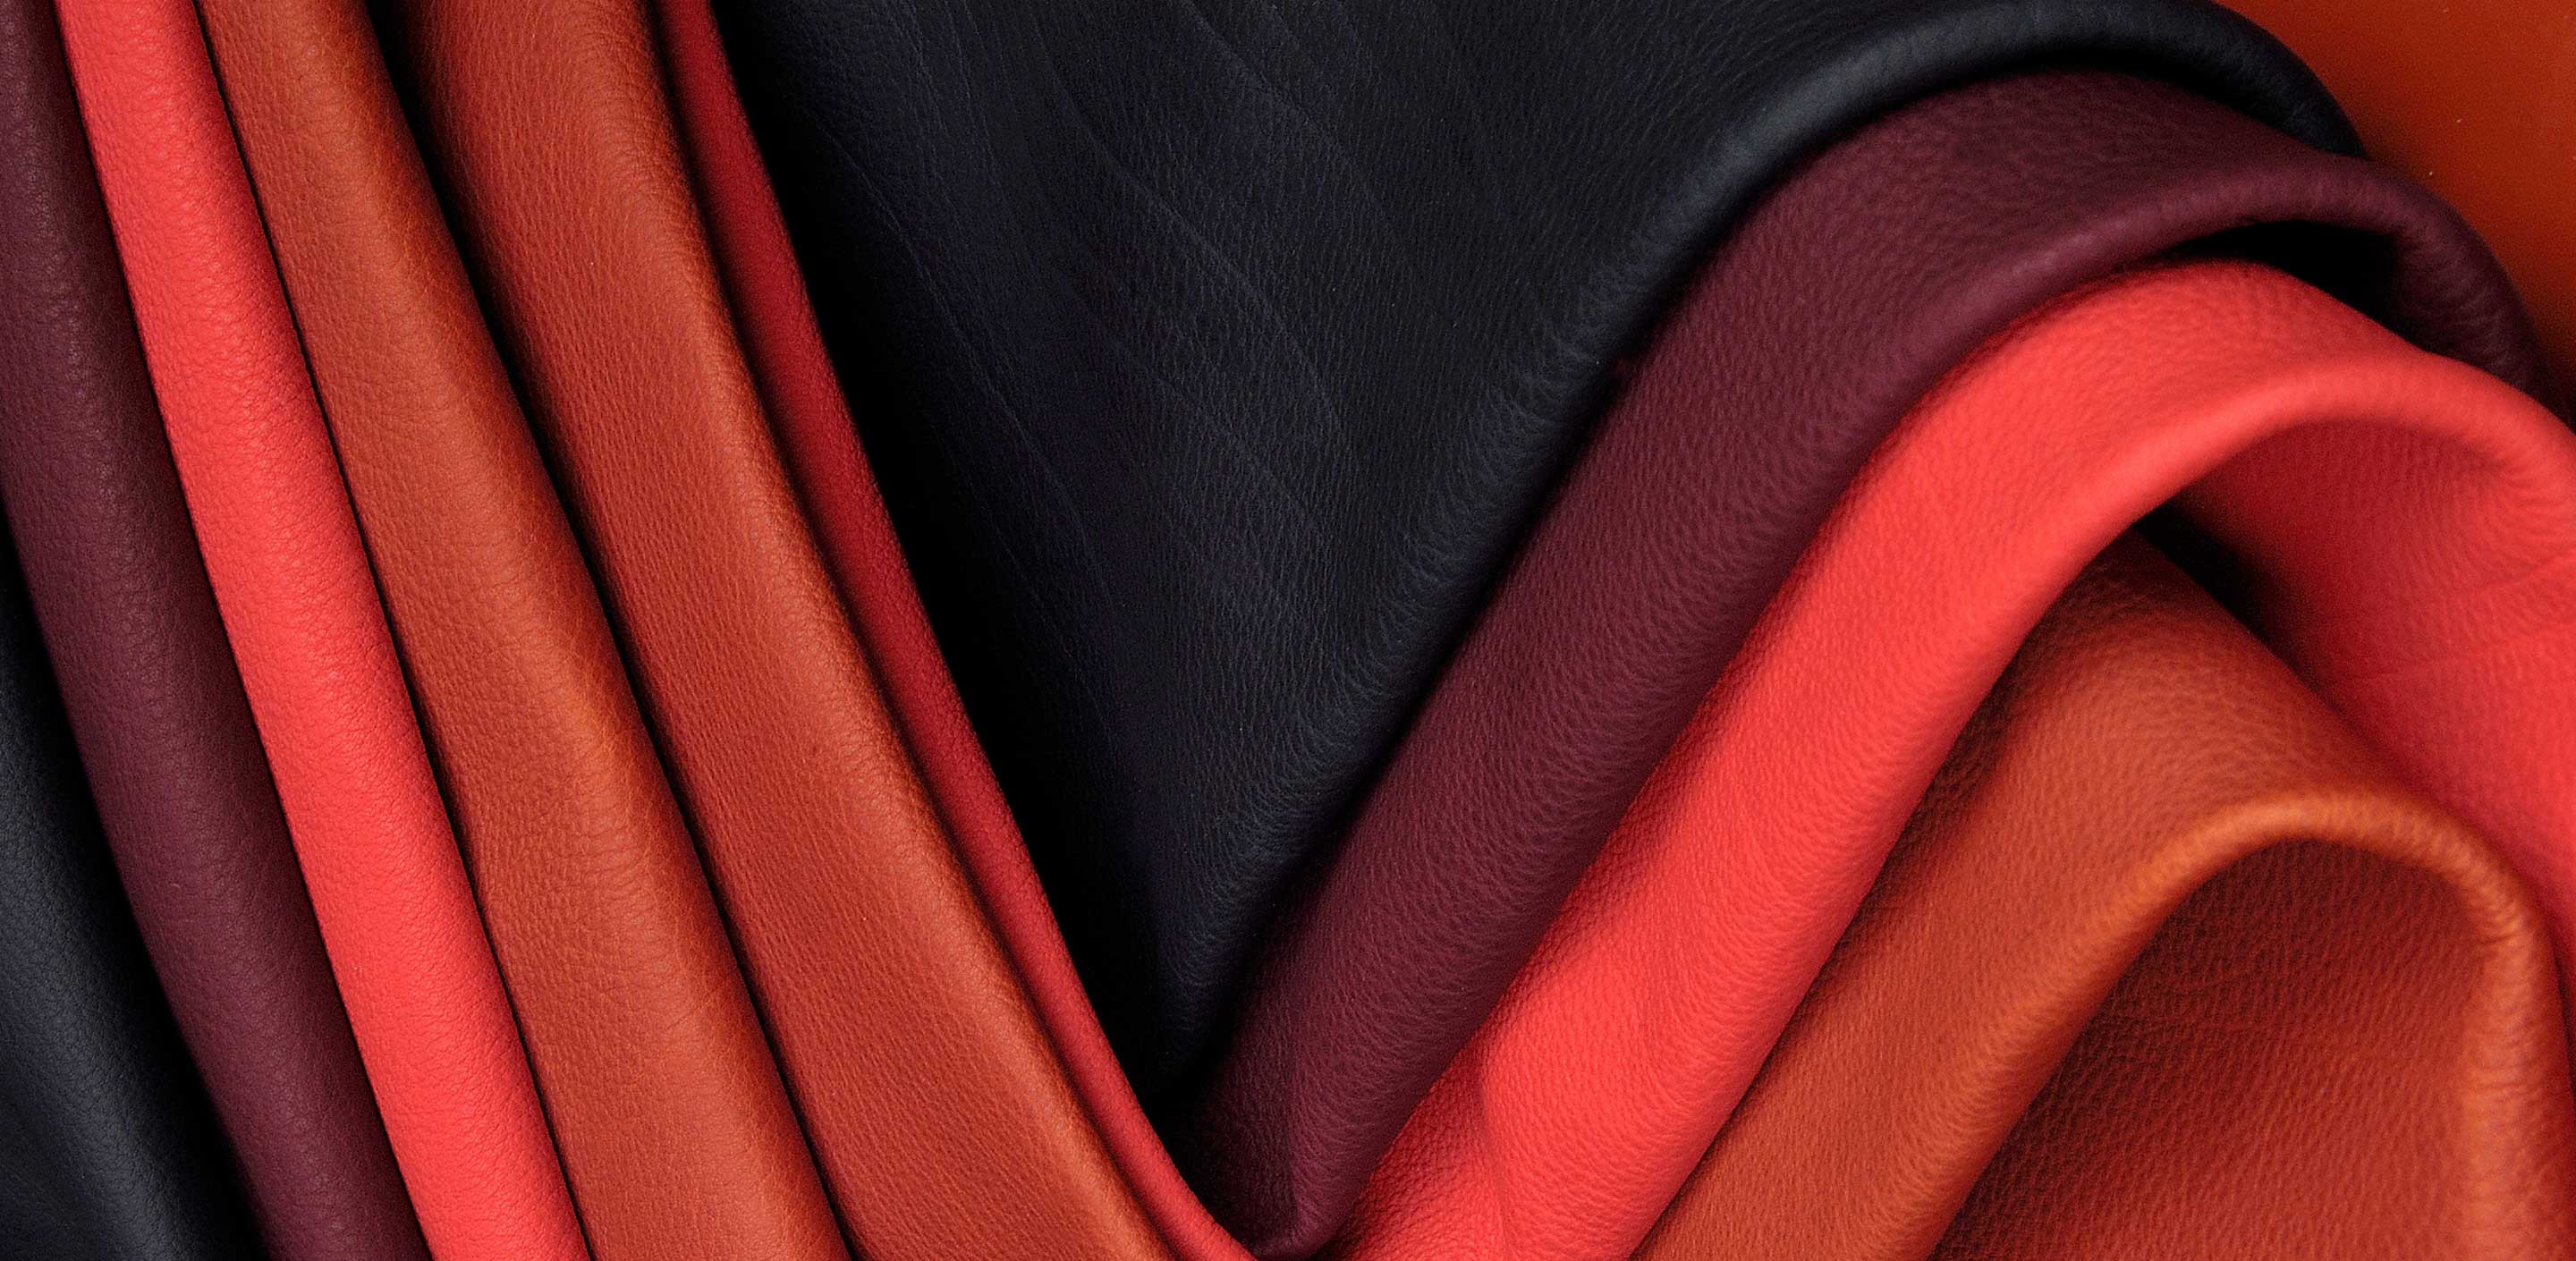 What Is Bicast Leather?